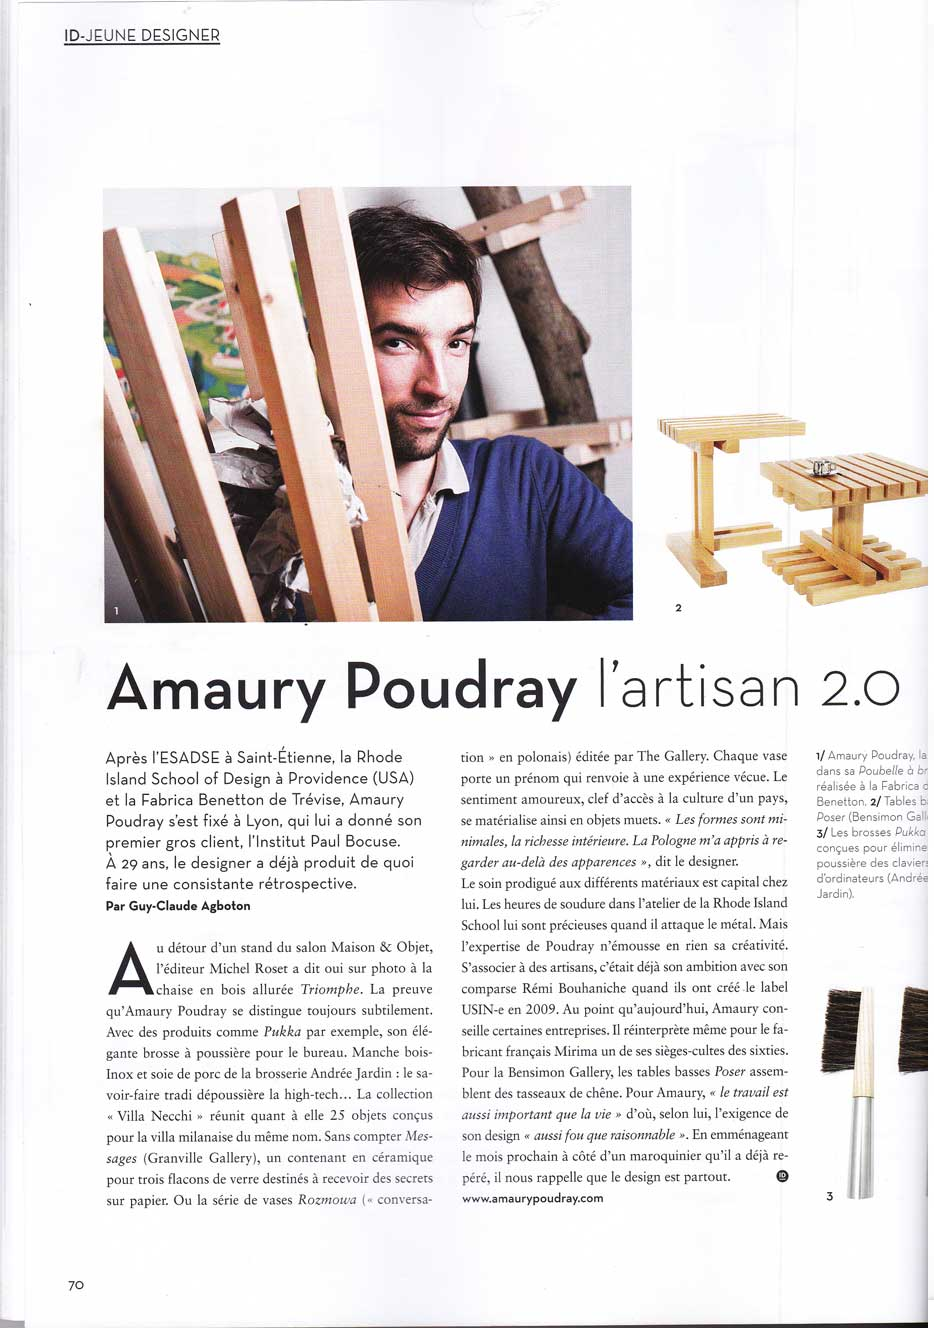 Article about Amaury Poudray craftsman designer